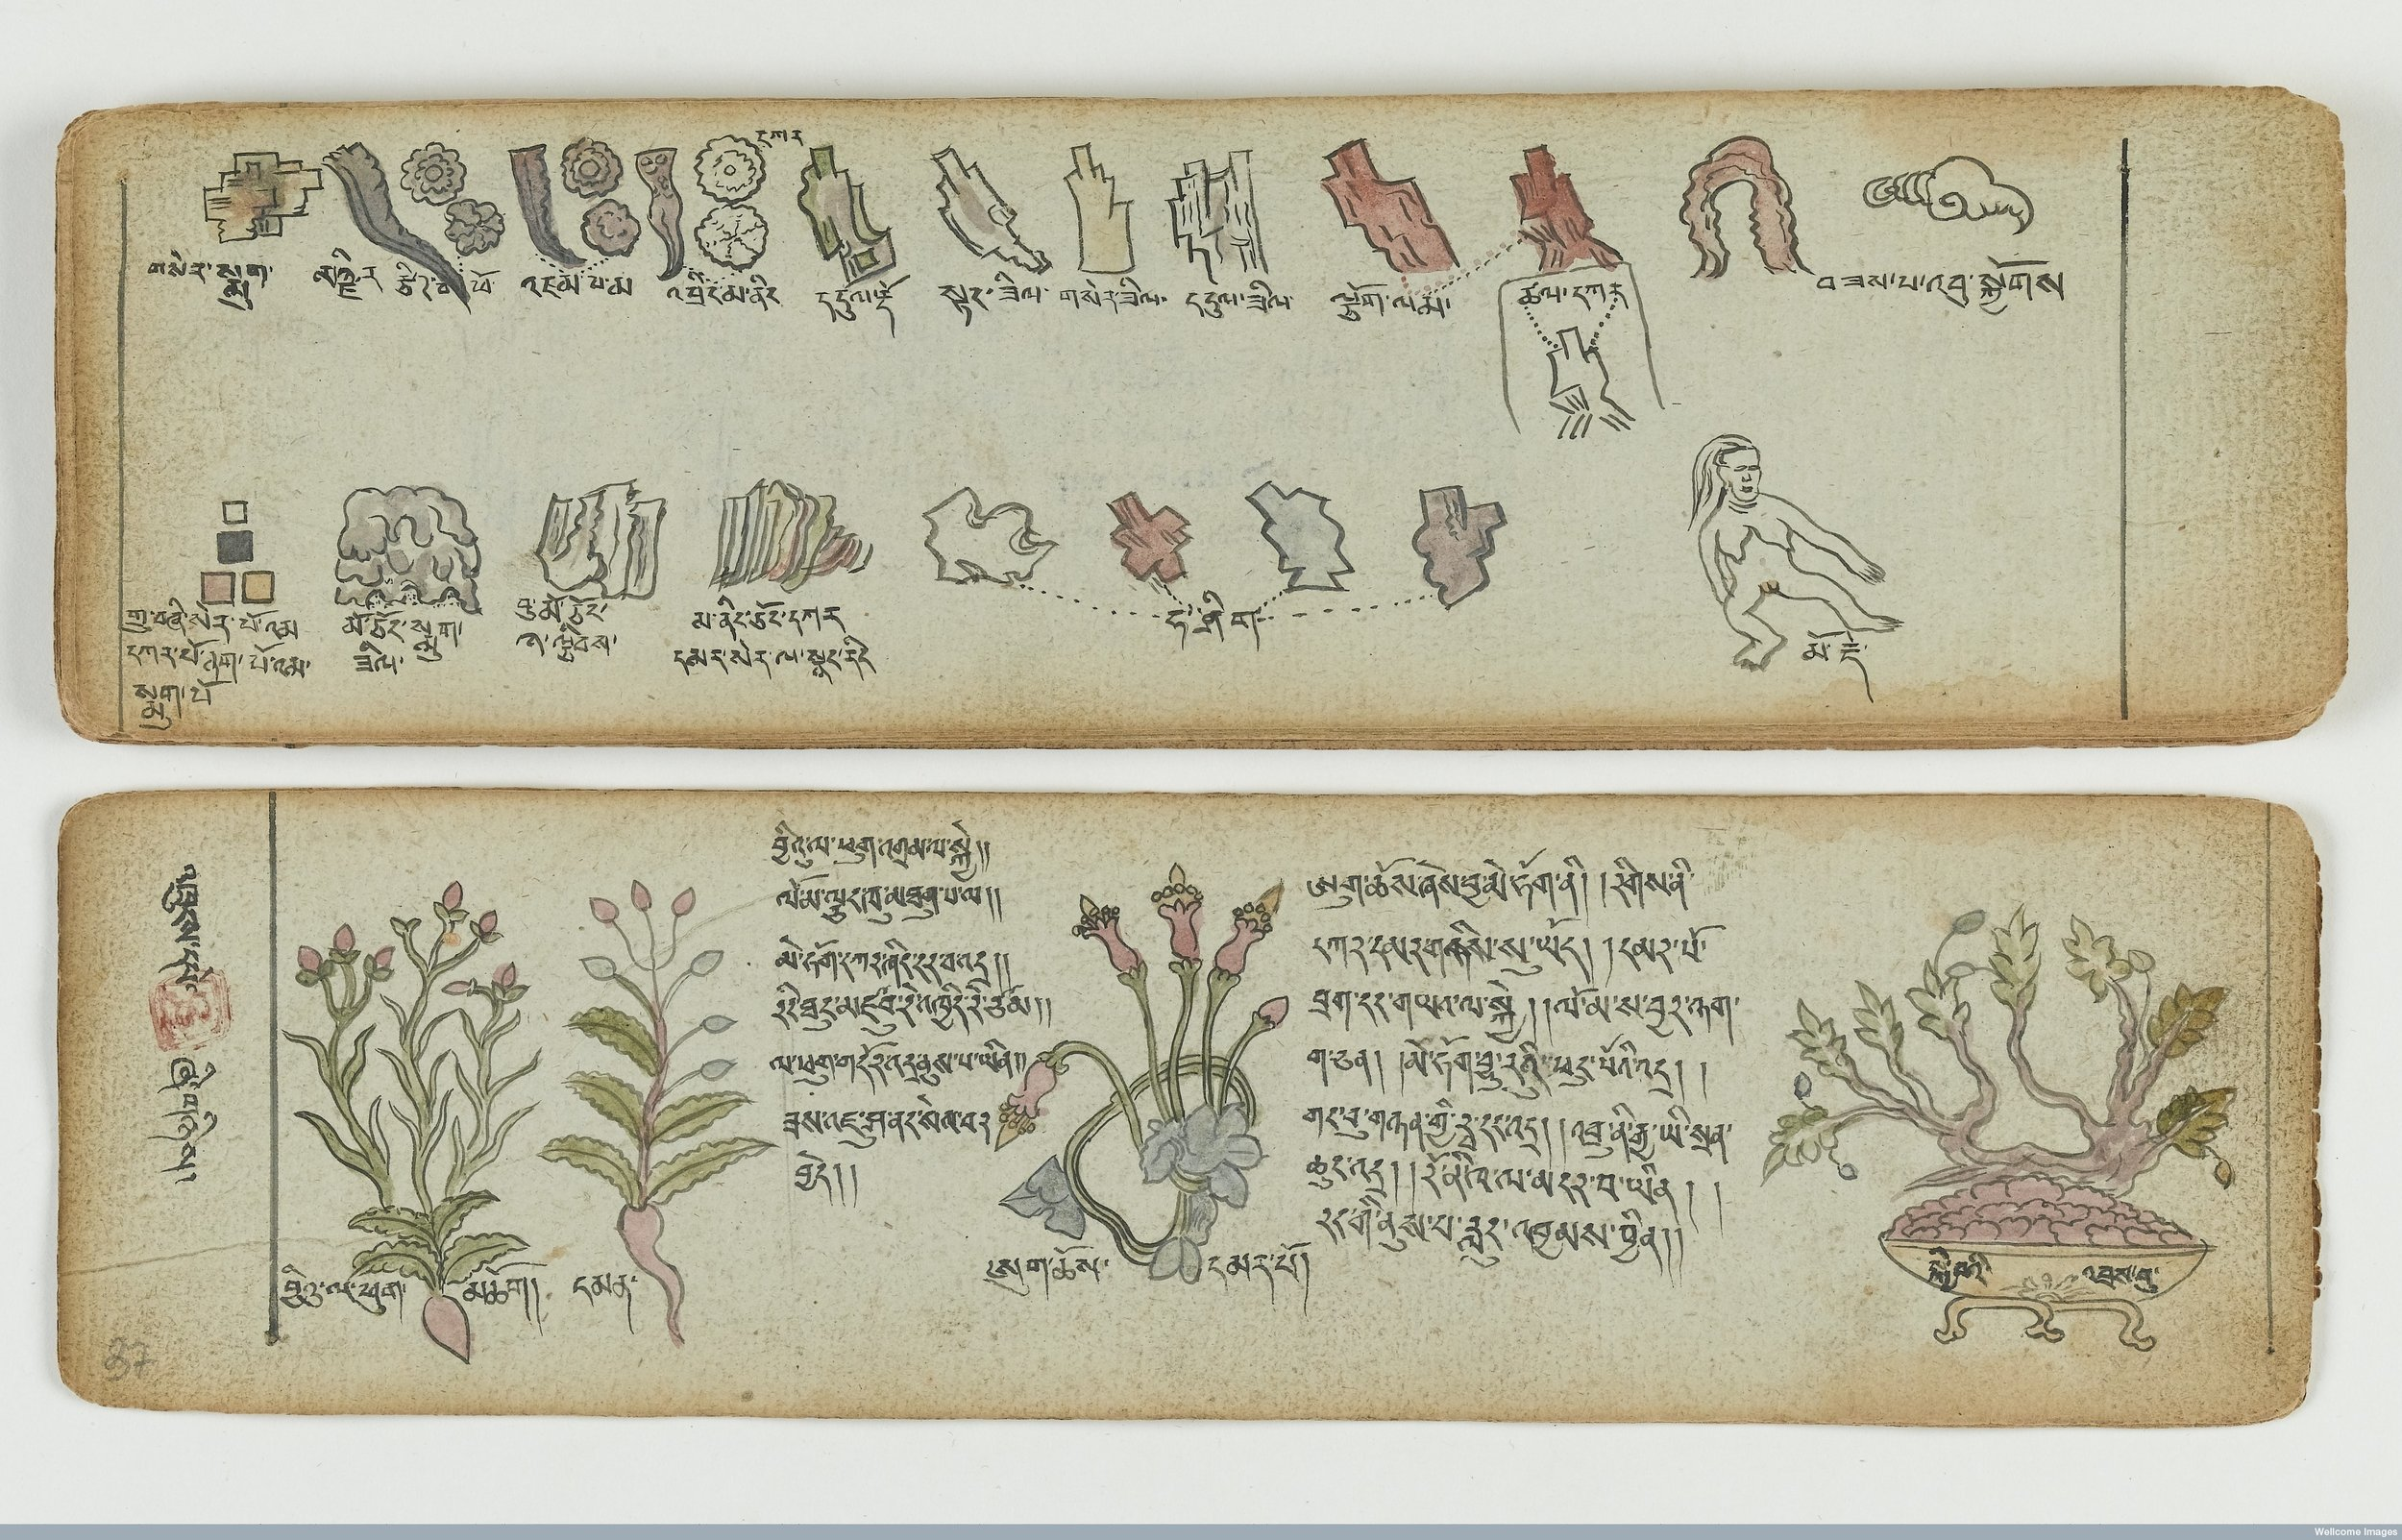 Illustrated Medical Simples of the Four Tantras, Tibeto-Mongolian manuscript, ink and watercolour on paper, 19th century